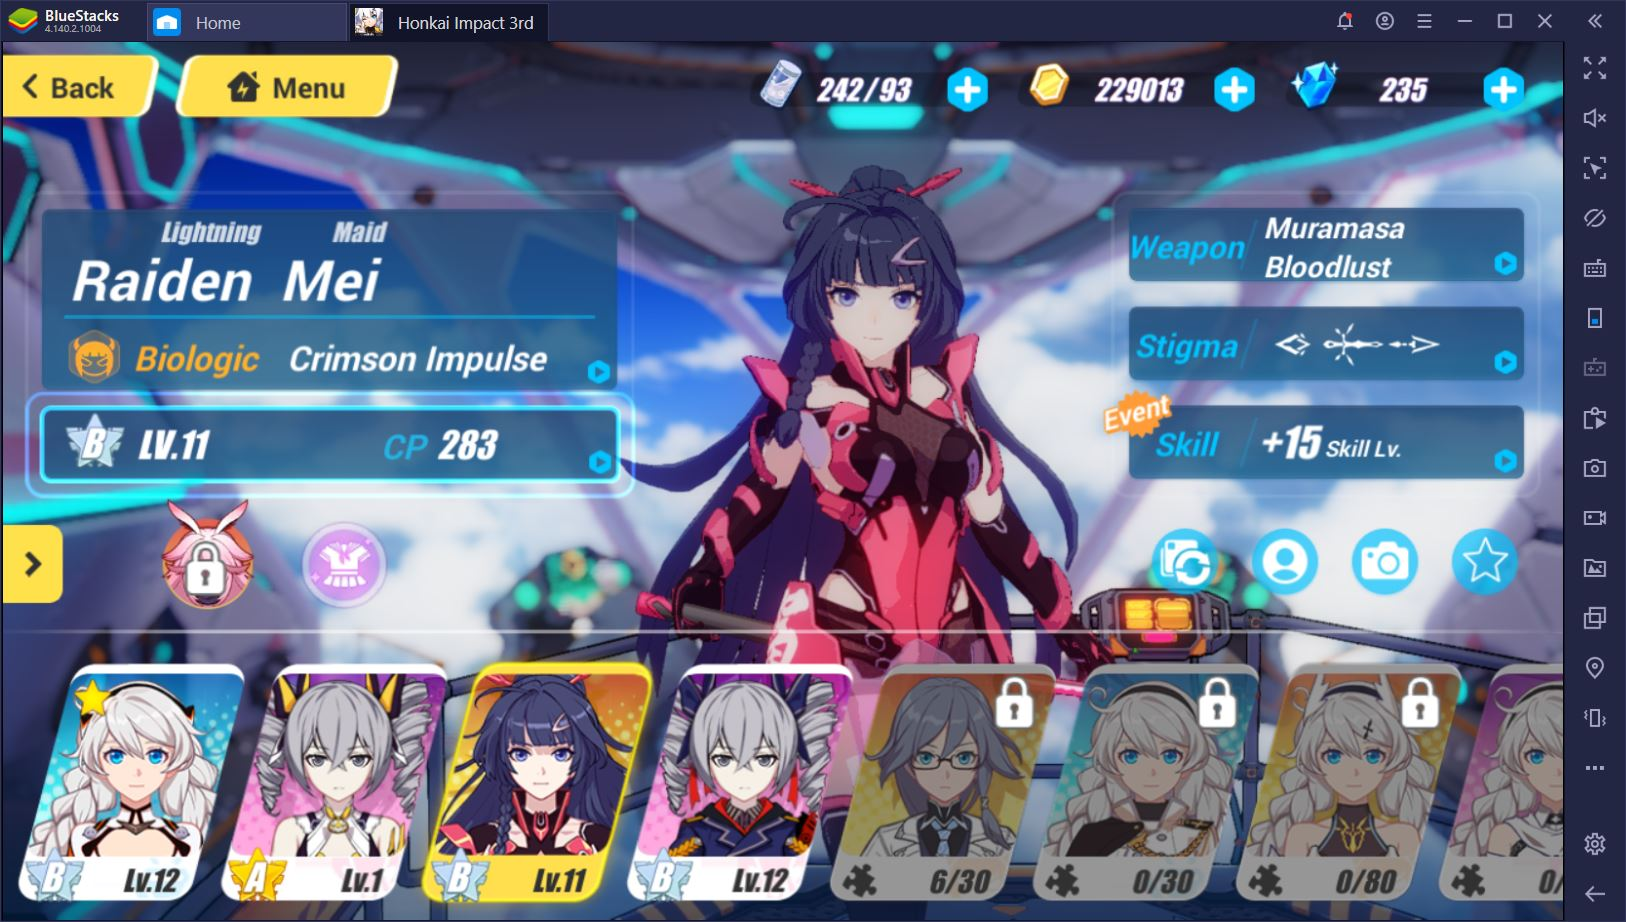 Honkai Impact 3rd on PC: Tips and Tricks for Active F2P Players